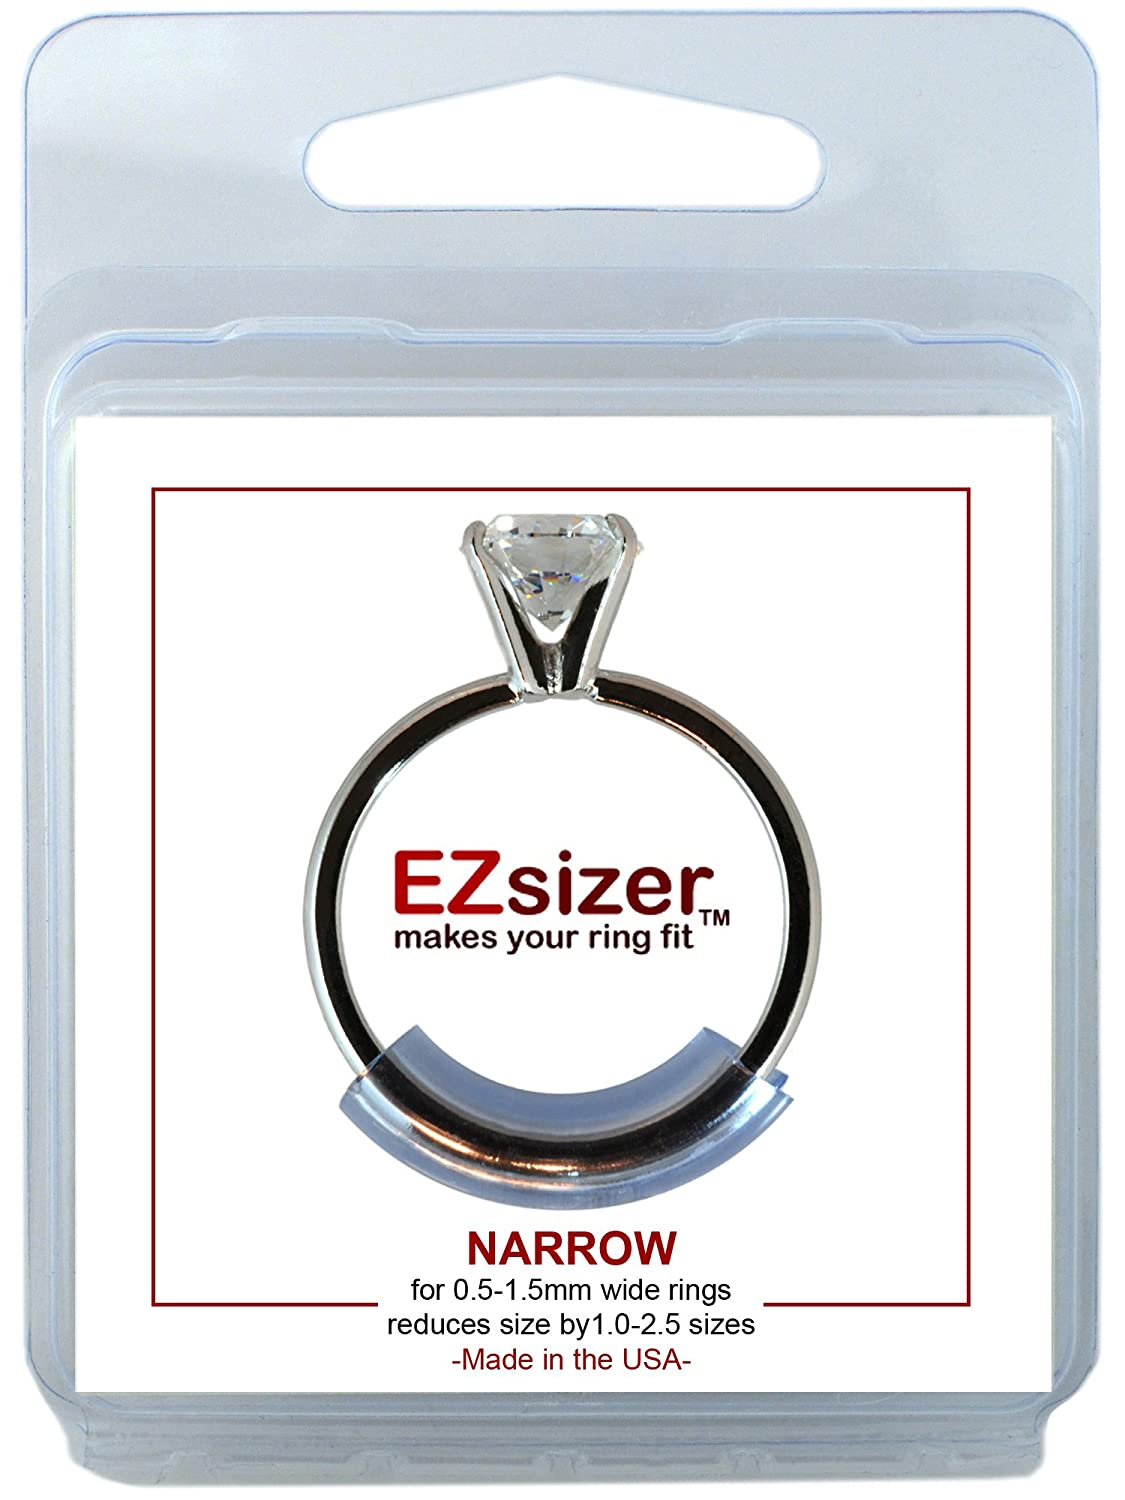 Amazon.com: EZsizer Ring Size Reducer, Ring Guard, Ring Size Adjuster Size:  Mixed, 1 Narrow, 1 Medium, 1 Wide, for rings 0.5 mm-6.0 mm wide.